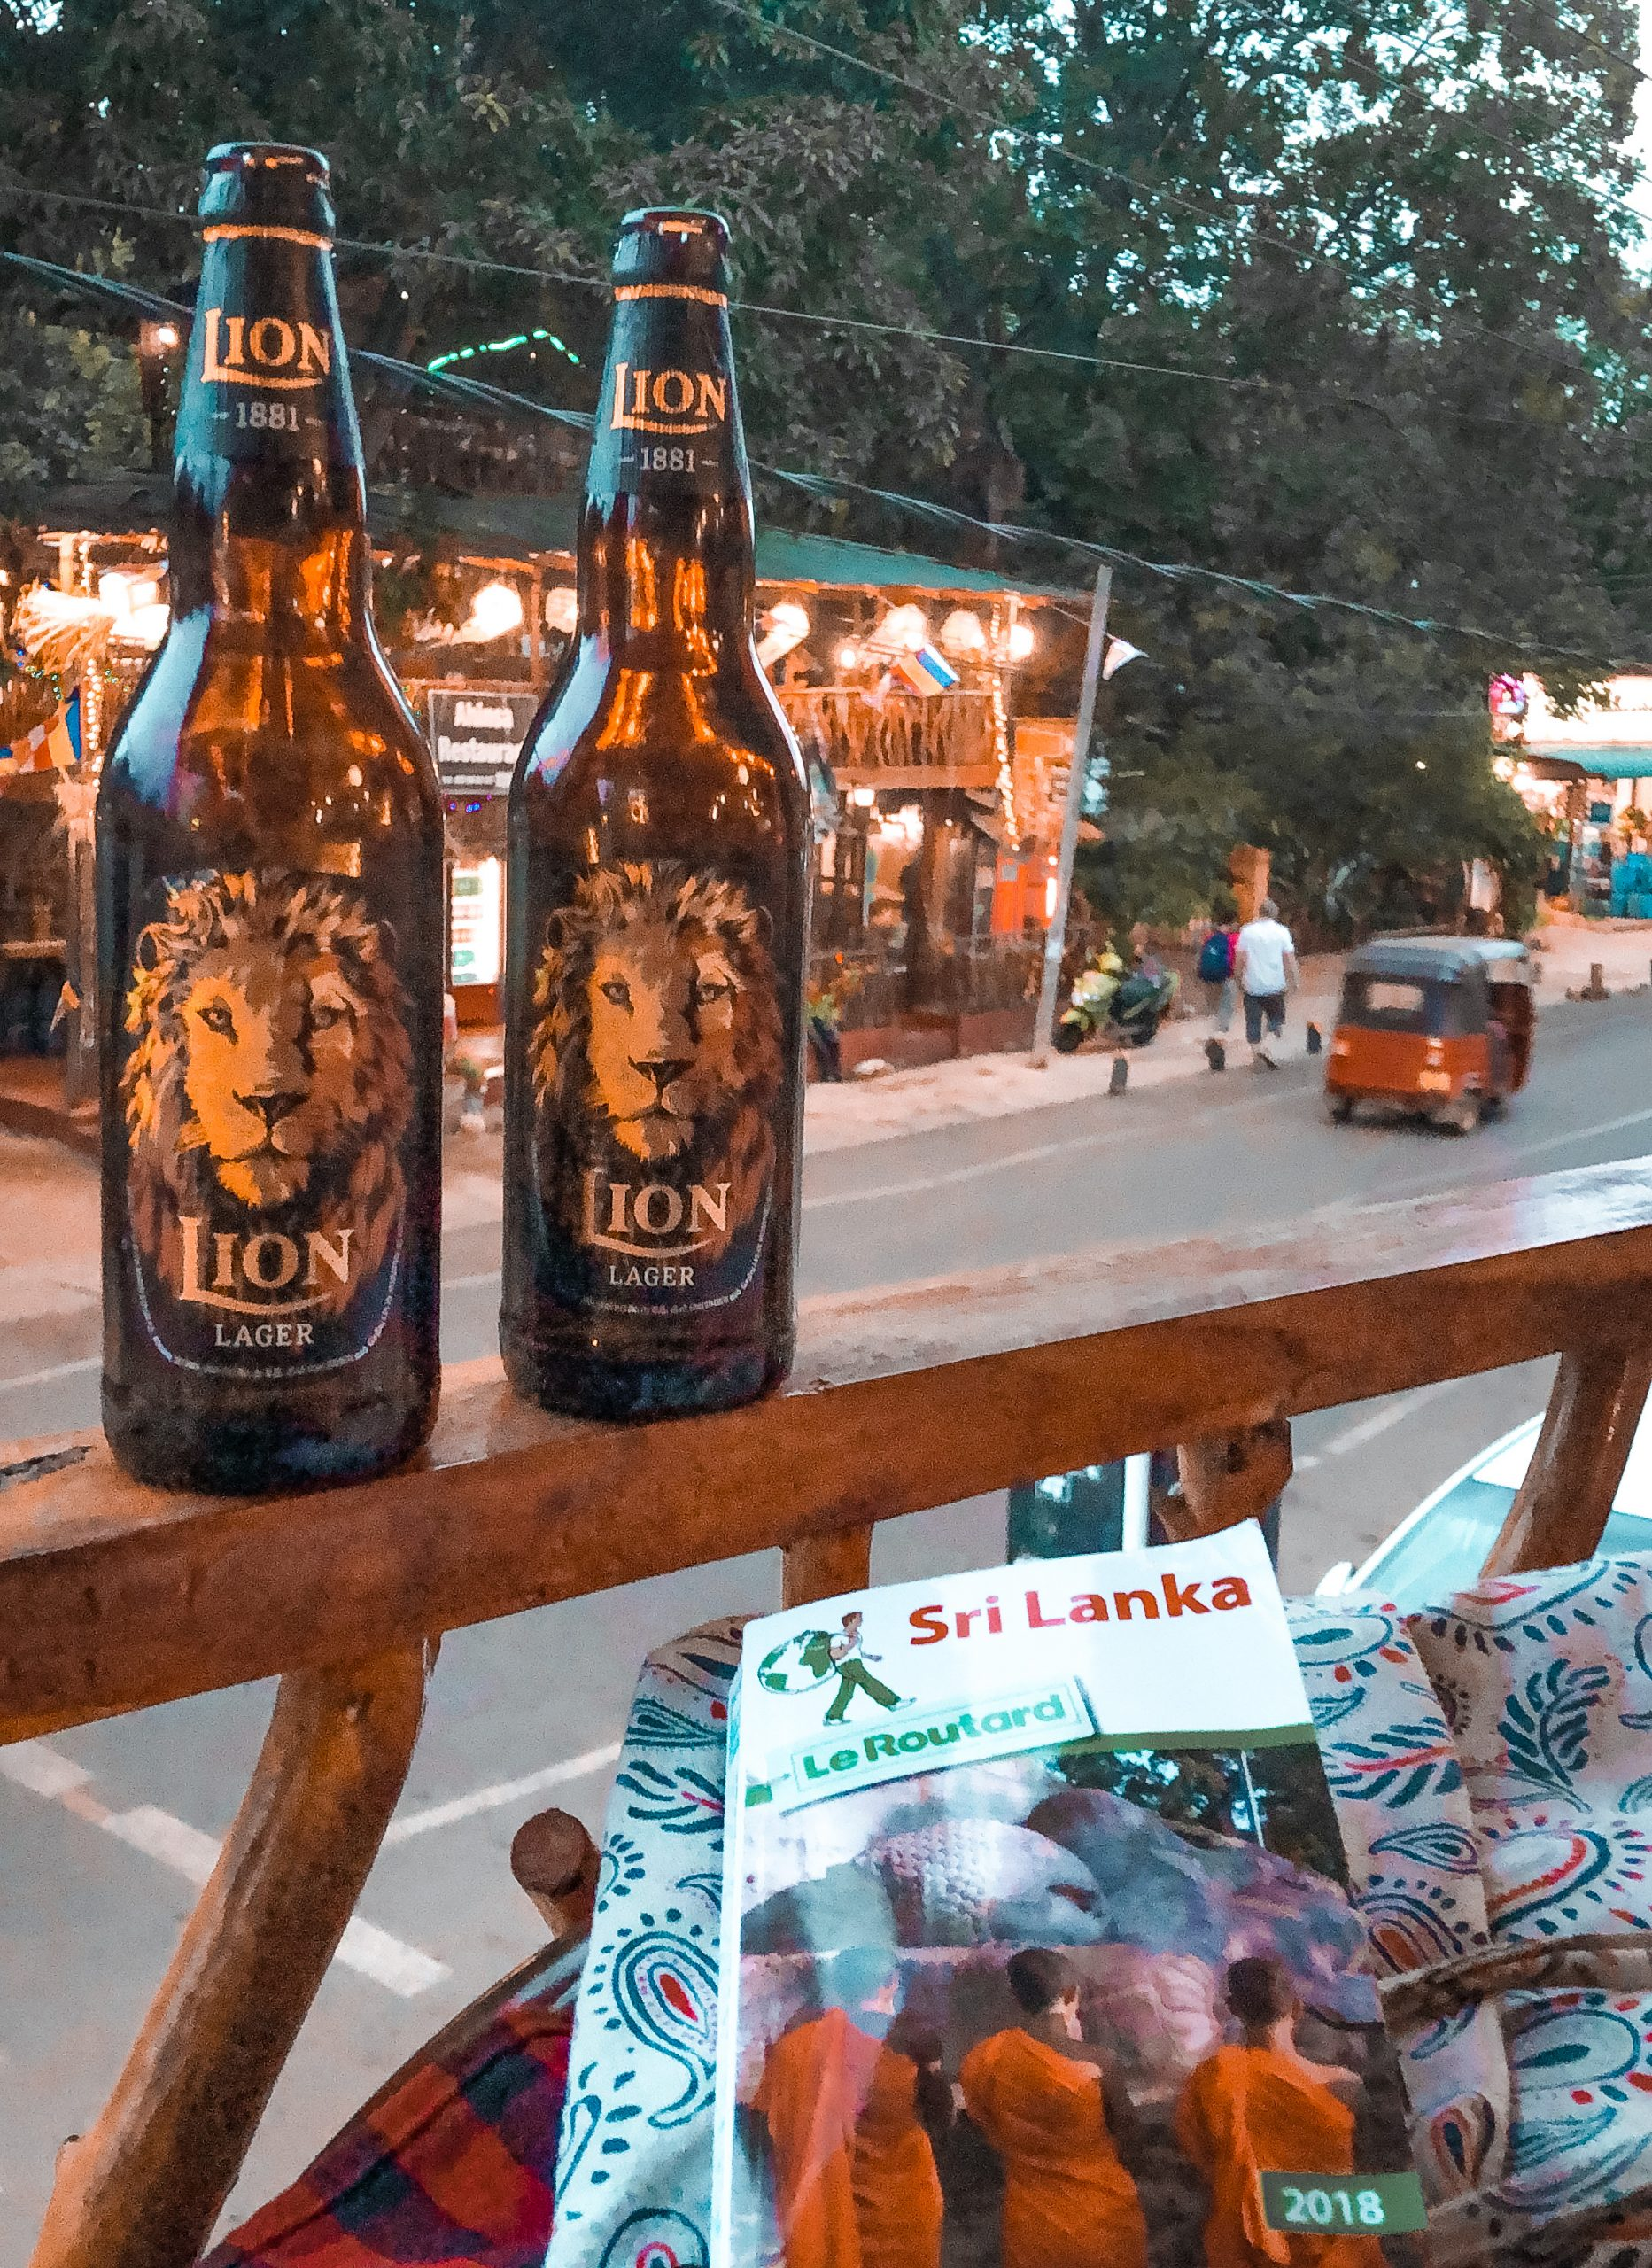 Homestay, bières locales sri lanka, lion's beer